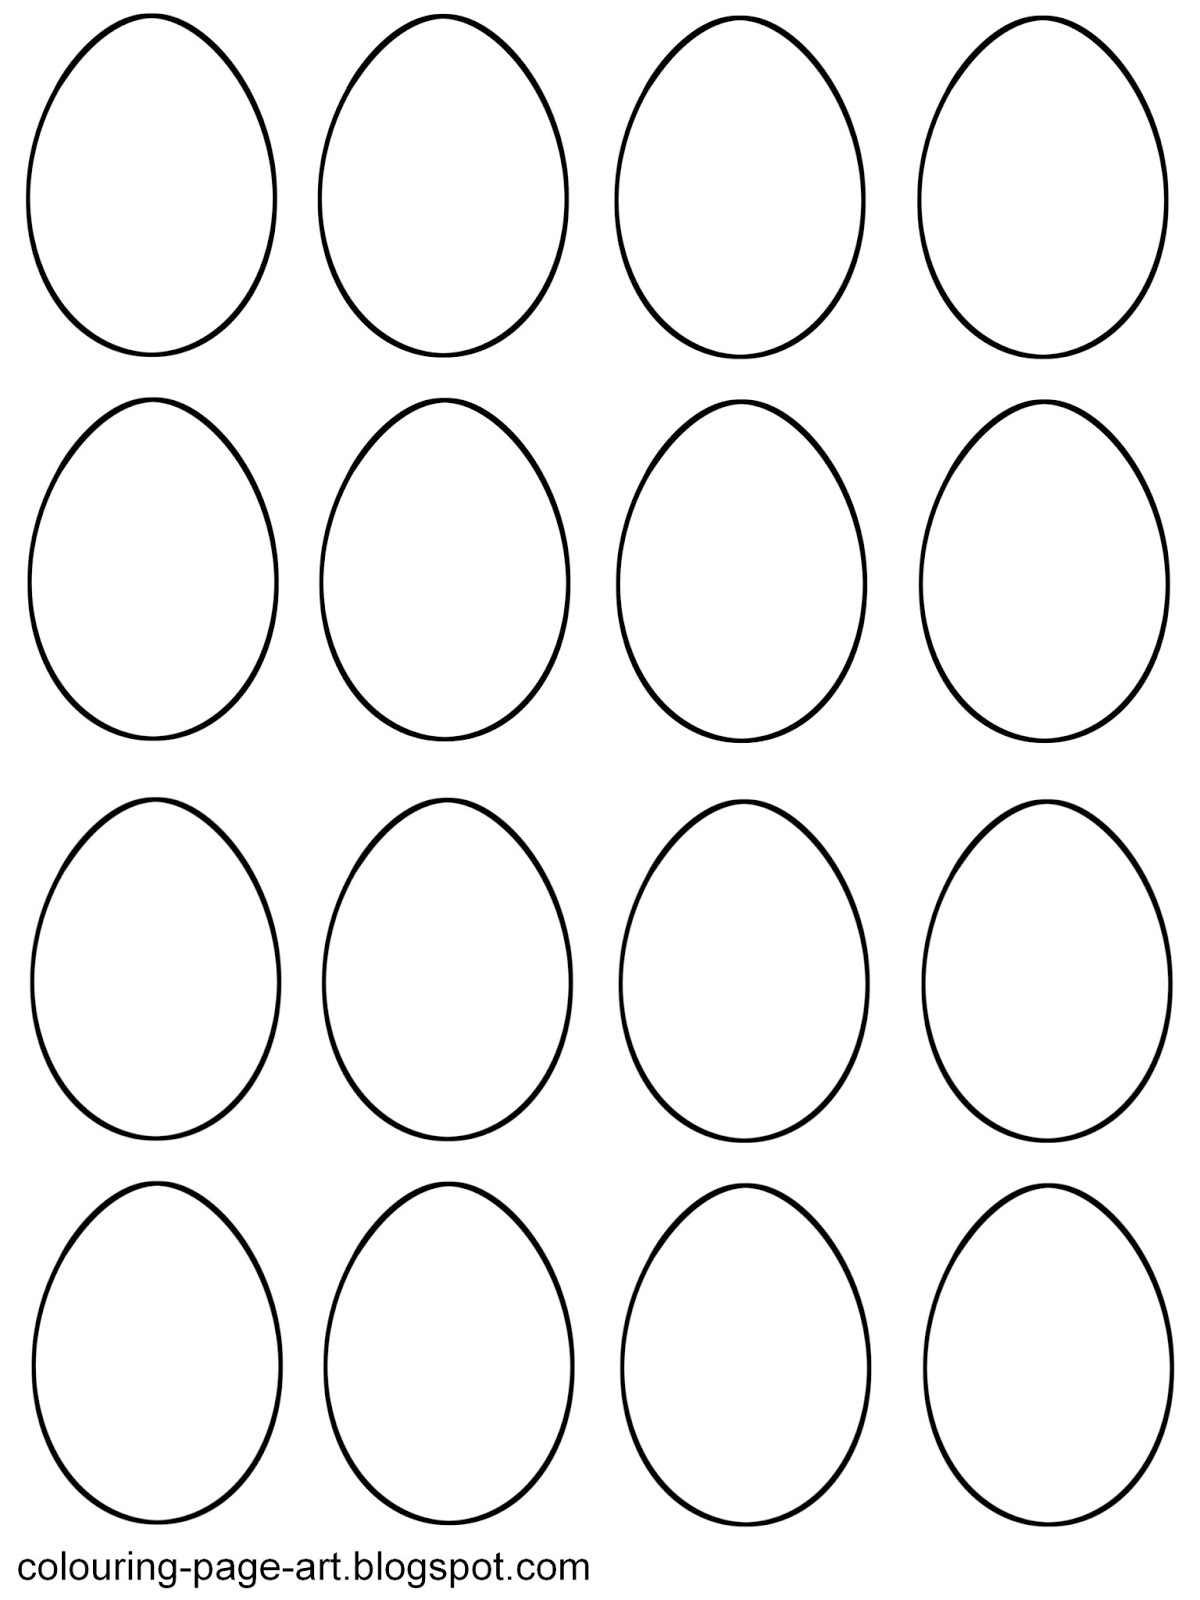 Template: Free Printables Easter Egg Template. Easter Egg Template - Easter Egg Template Free Printable